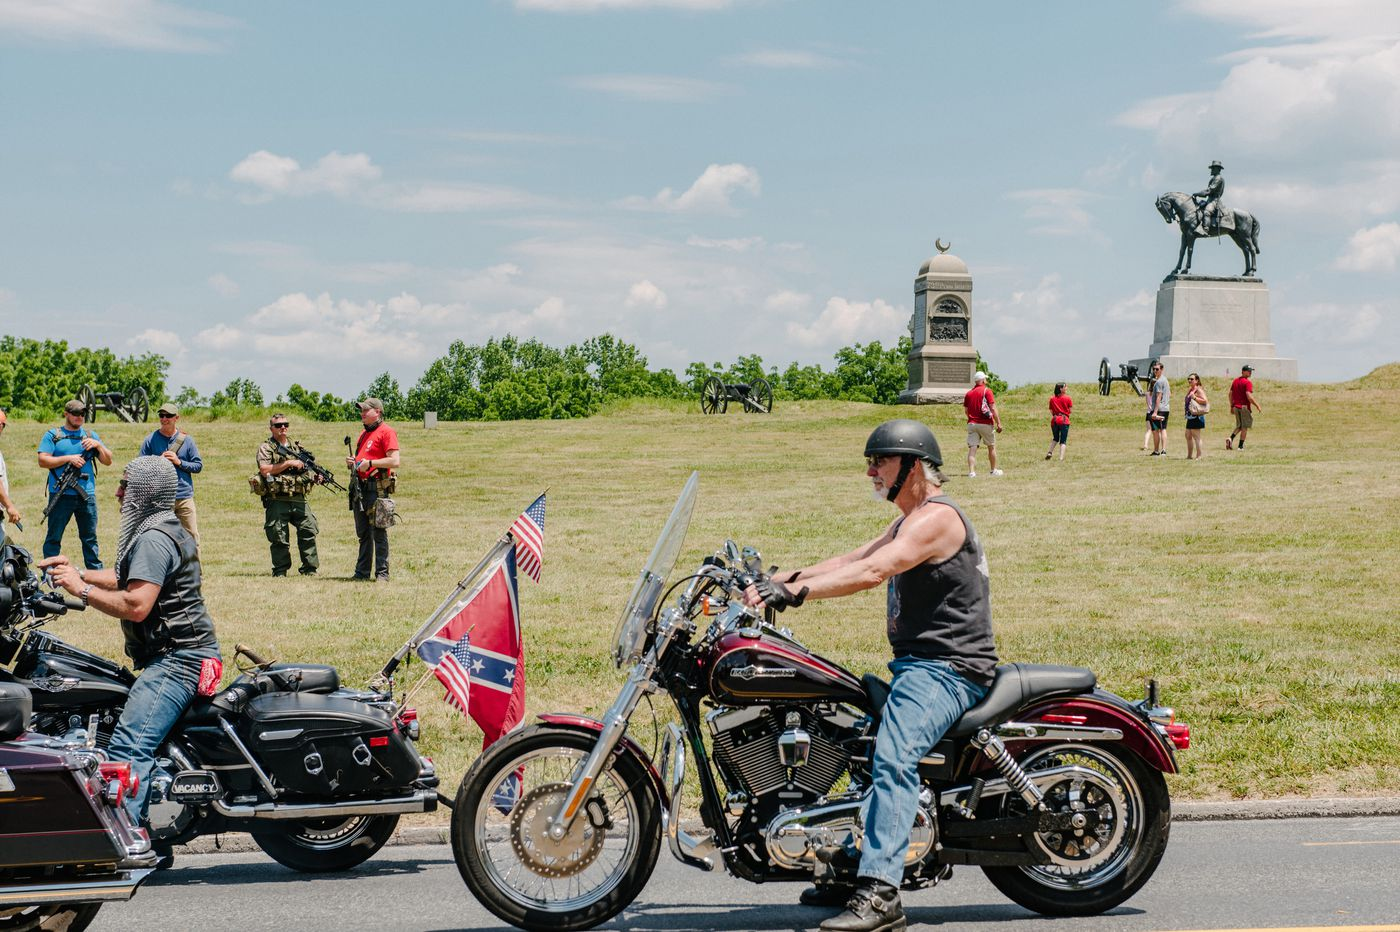 Armed militias and far-right groups flock to Gettysburg to foil supposed flag burning